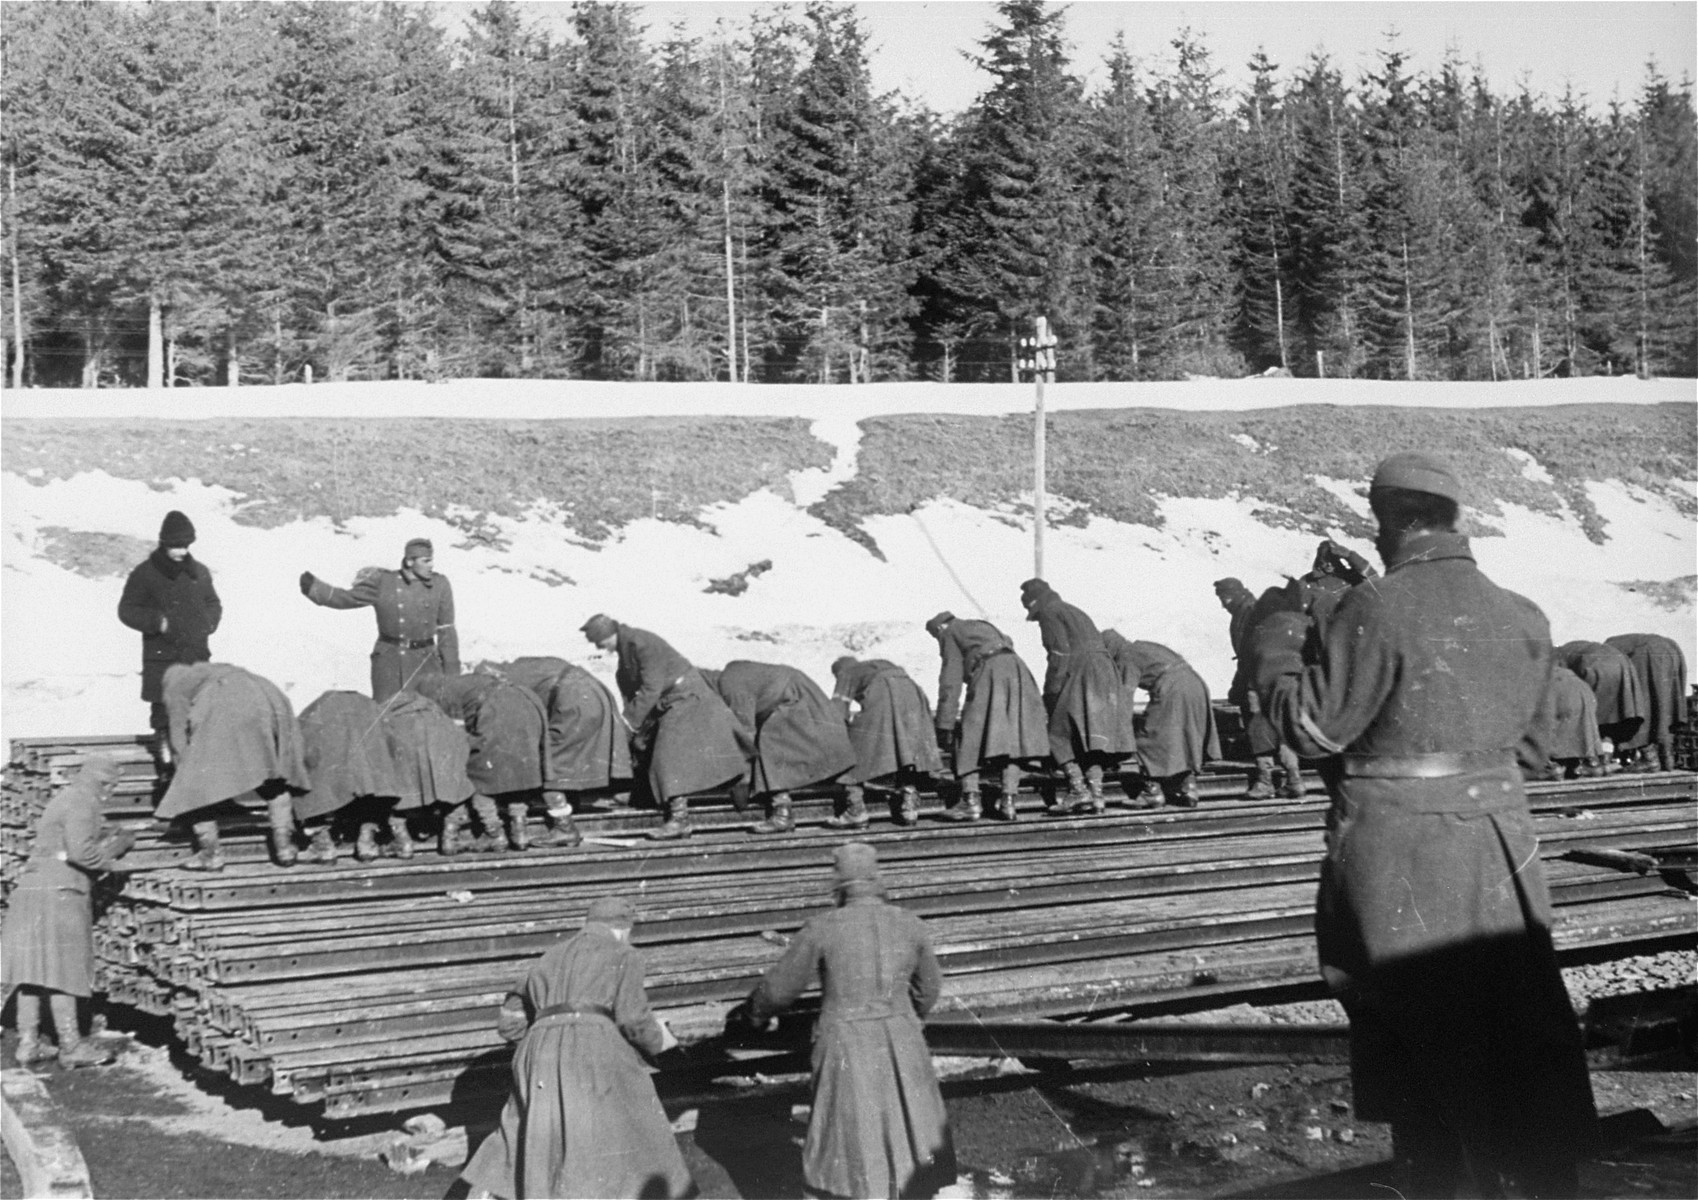 Jewish conscripts in Company 108/57 of the Hungarian Labor Service at forced labor unloading and stacking rails